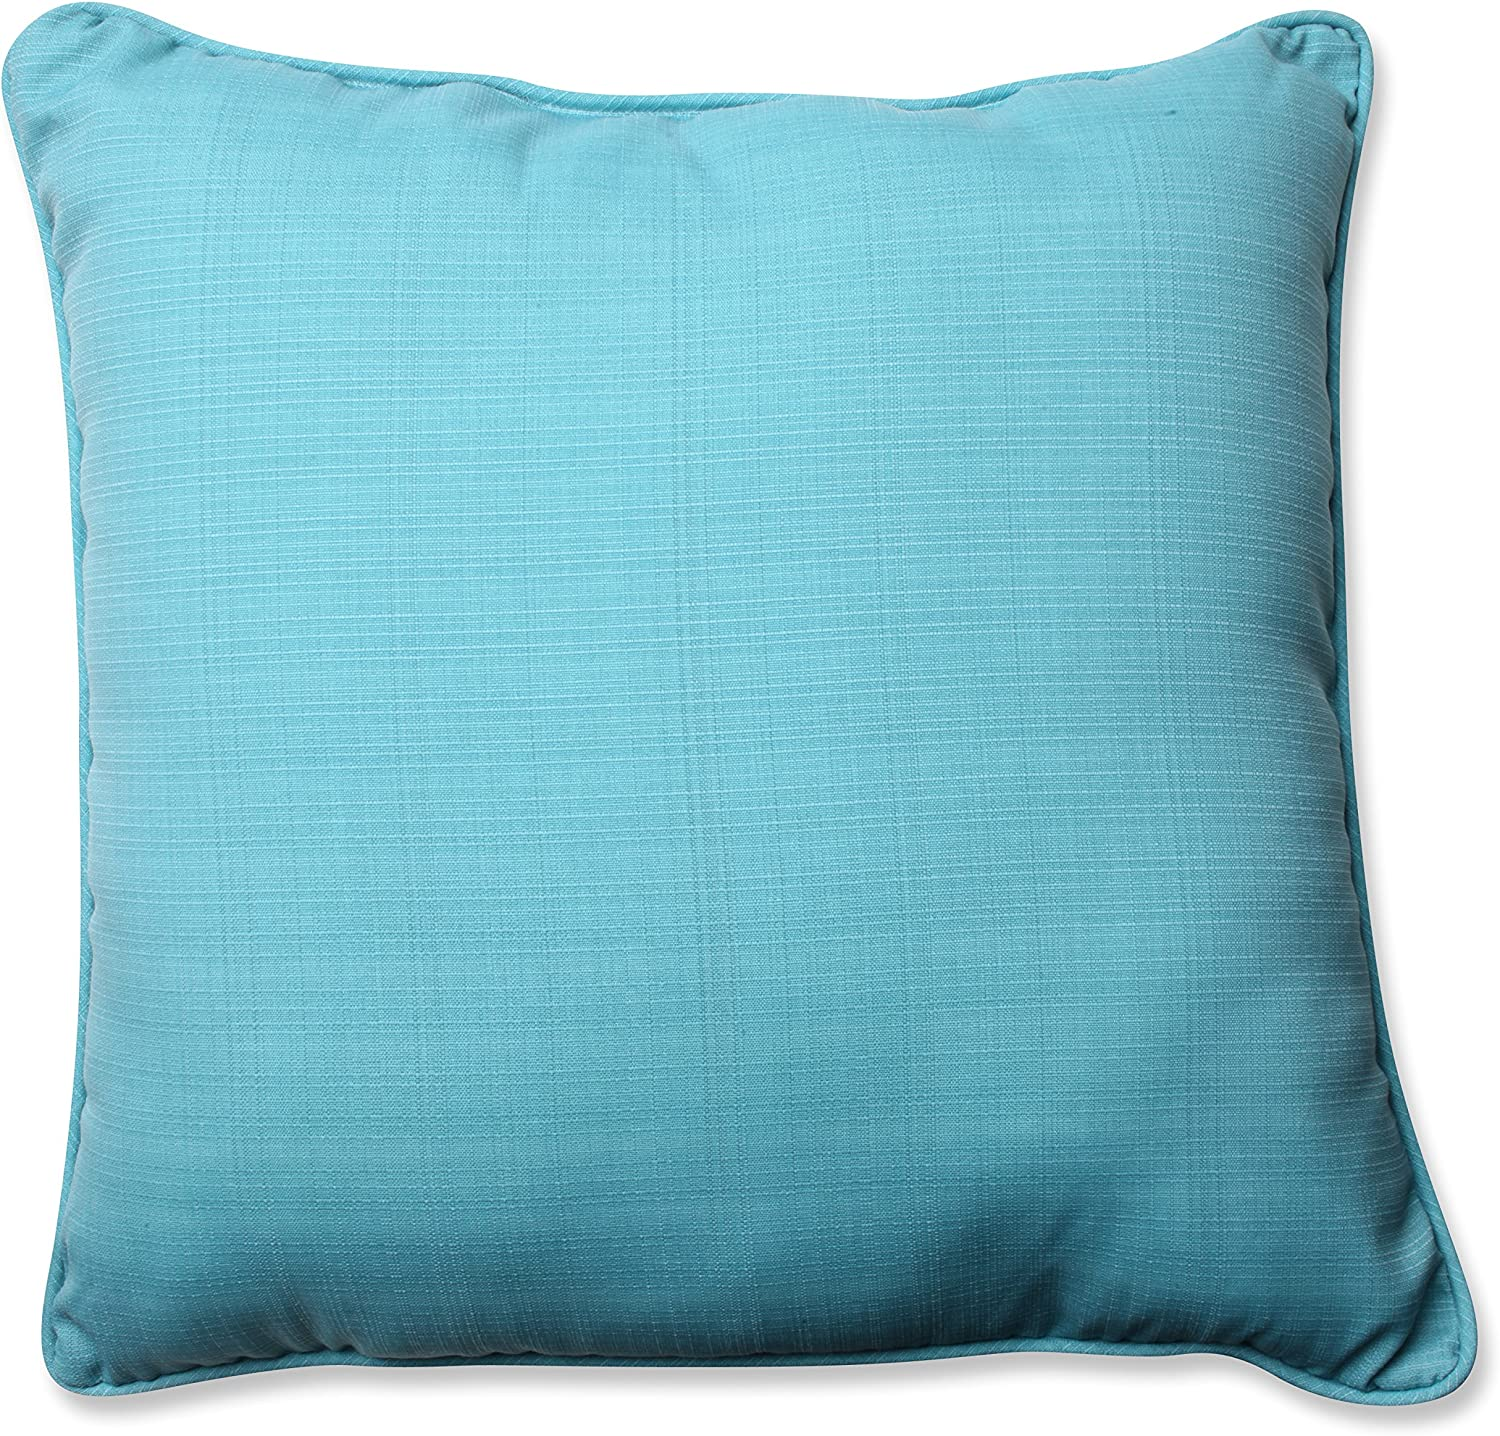 Pillow Perfect Outdoor Indoor Forsyth Pool Floor Pillow 25 X 25 Turquoise Home Kitchen Amazon Com